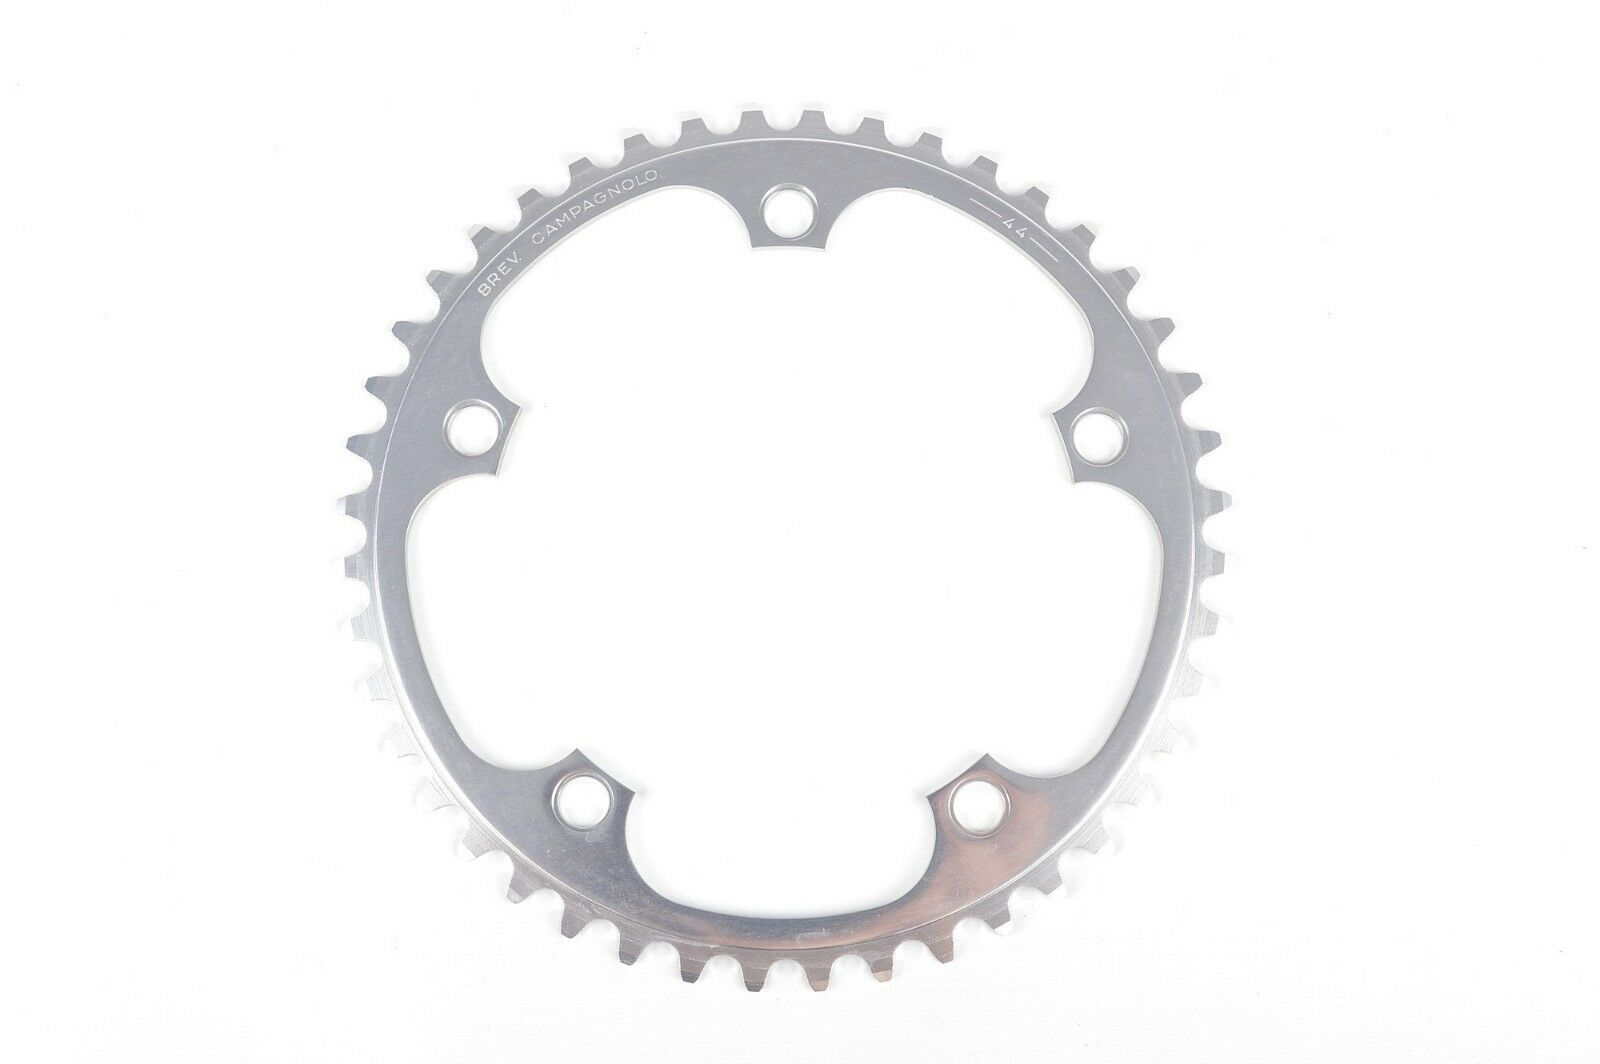 Vintage Campagnolo Super Record Road Bike Chainring 44T  135 BCD NOS  exclusive